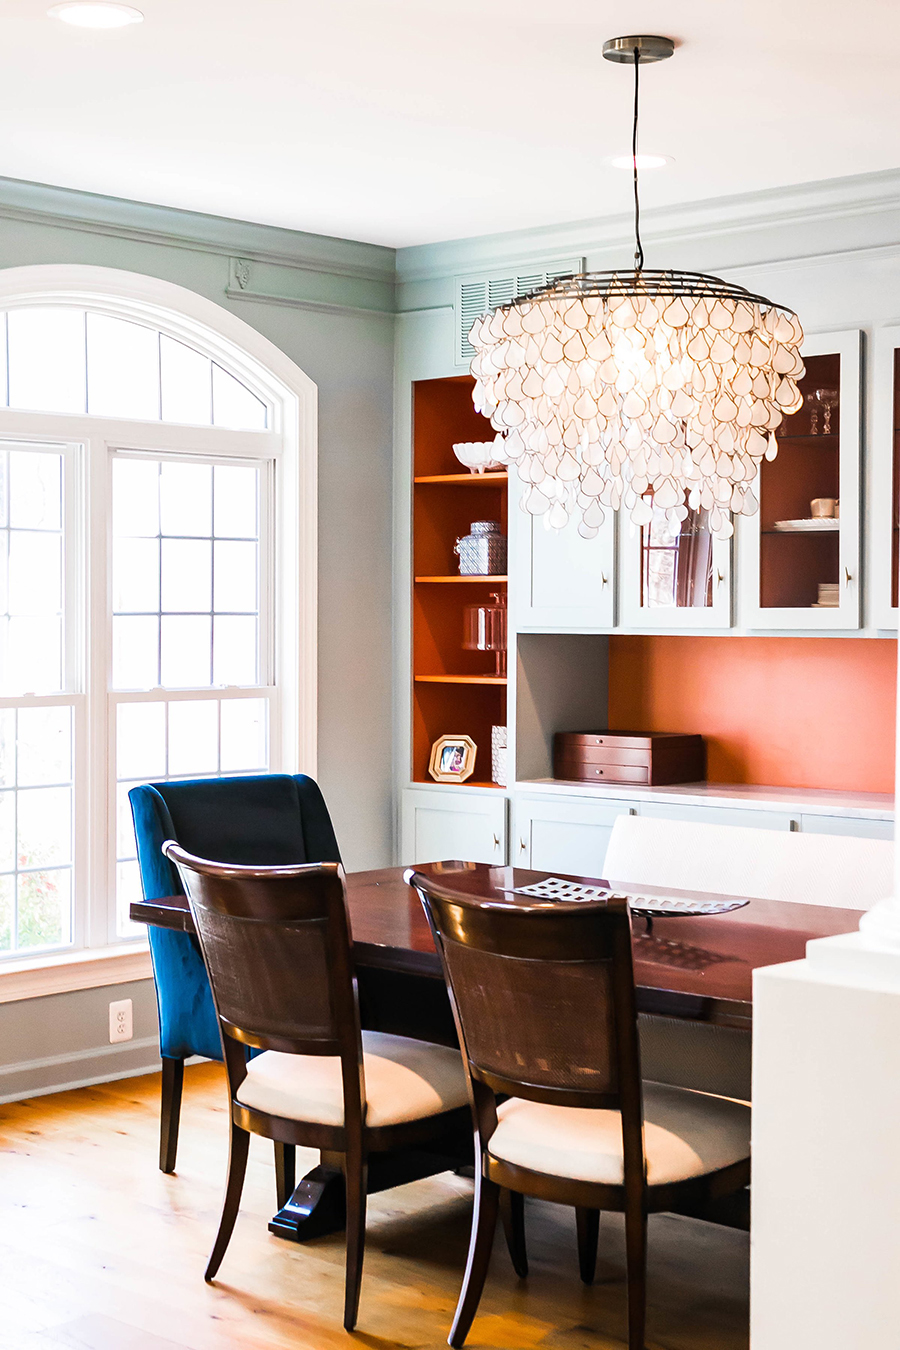 Aside From The Beautiful Cabinetry CB2 Capiz Chandelier Is Showstopper In Room It Gives A Light Airy And Playful Feel To More Formal Space